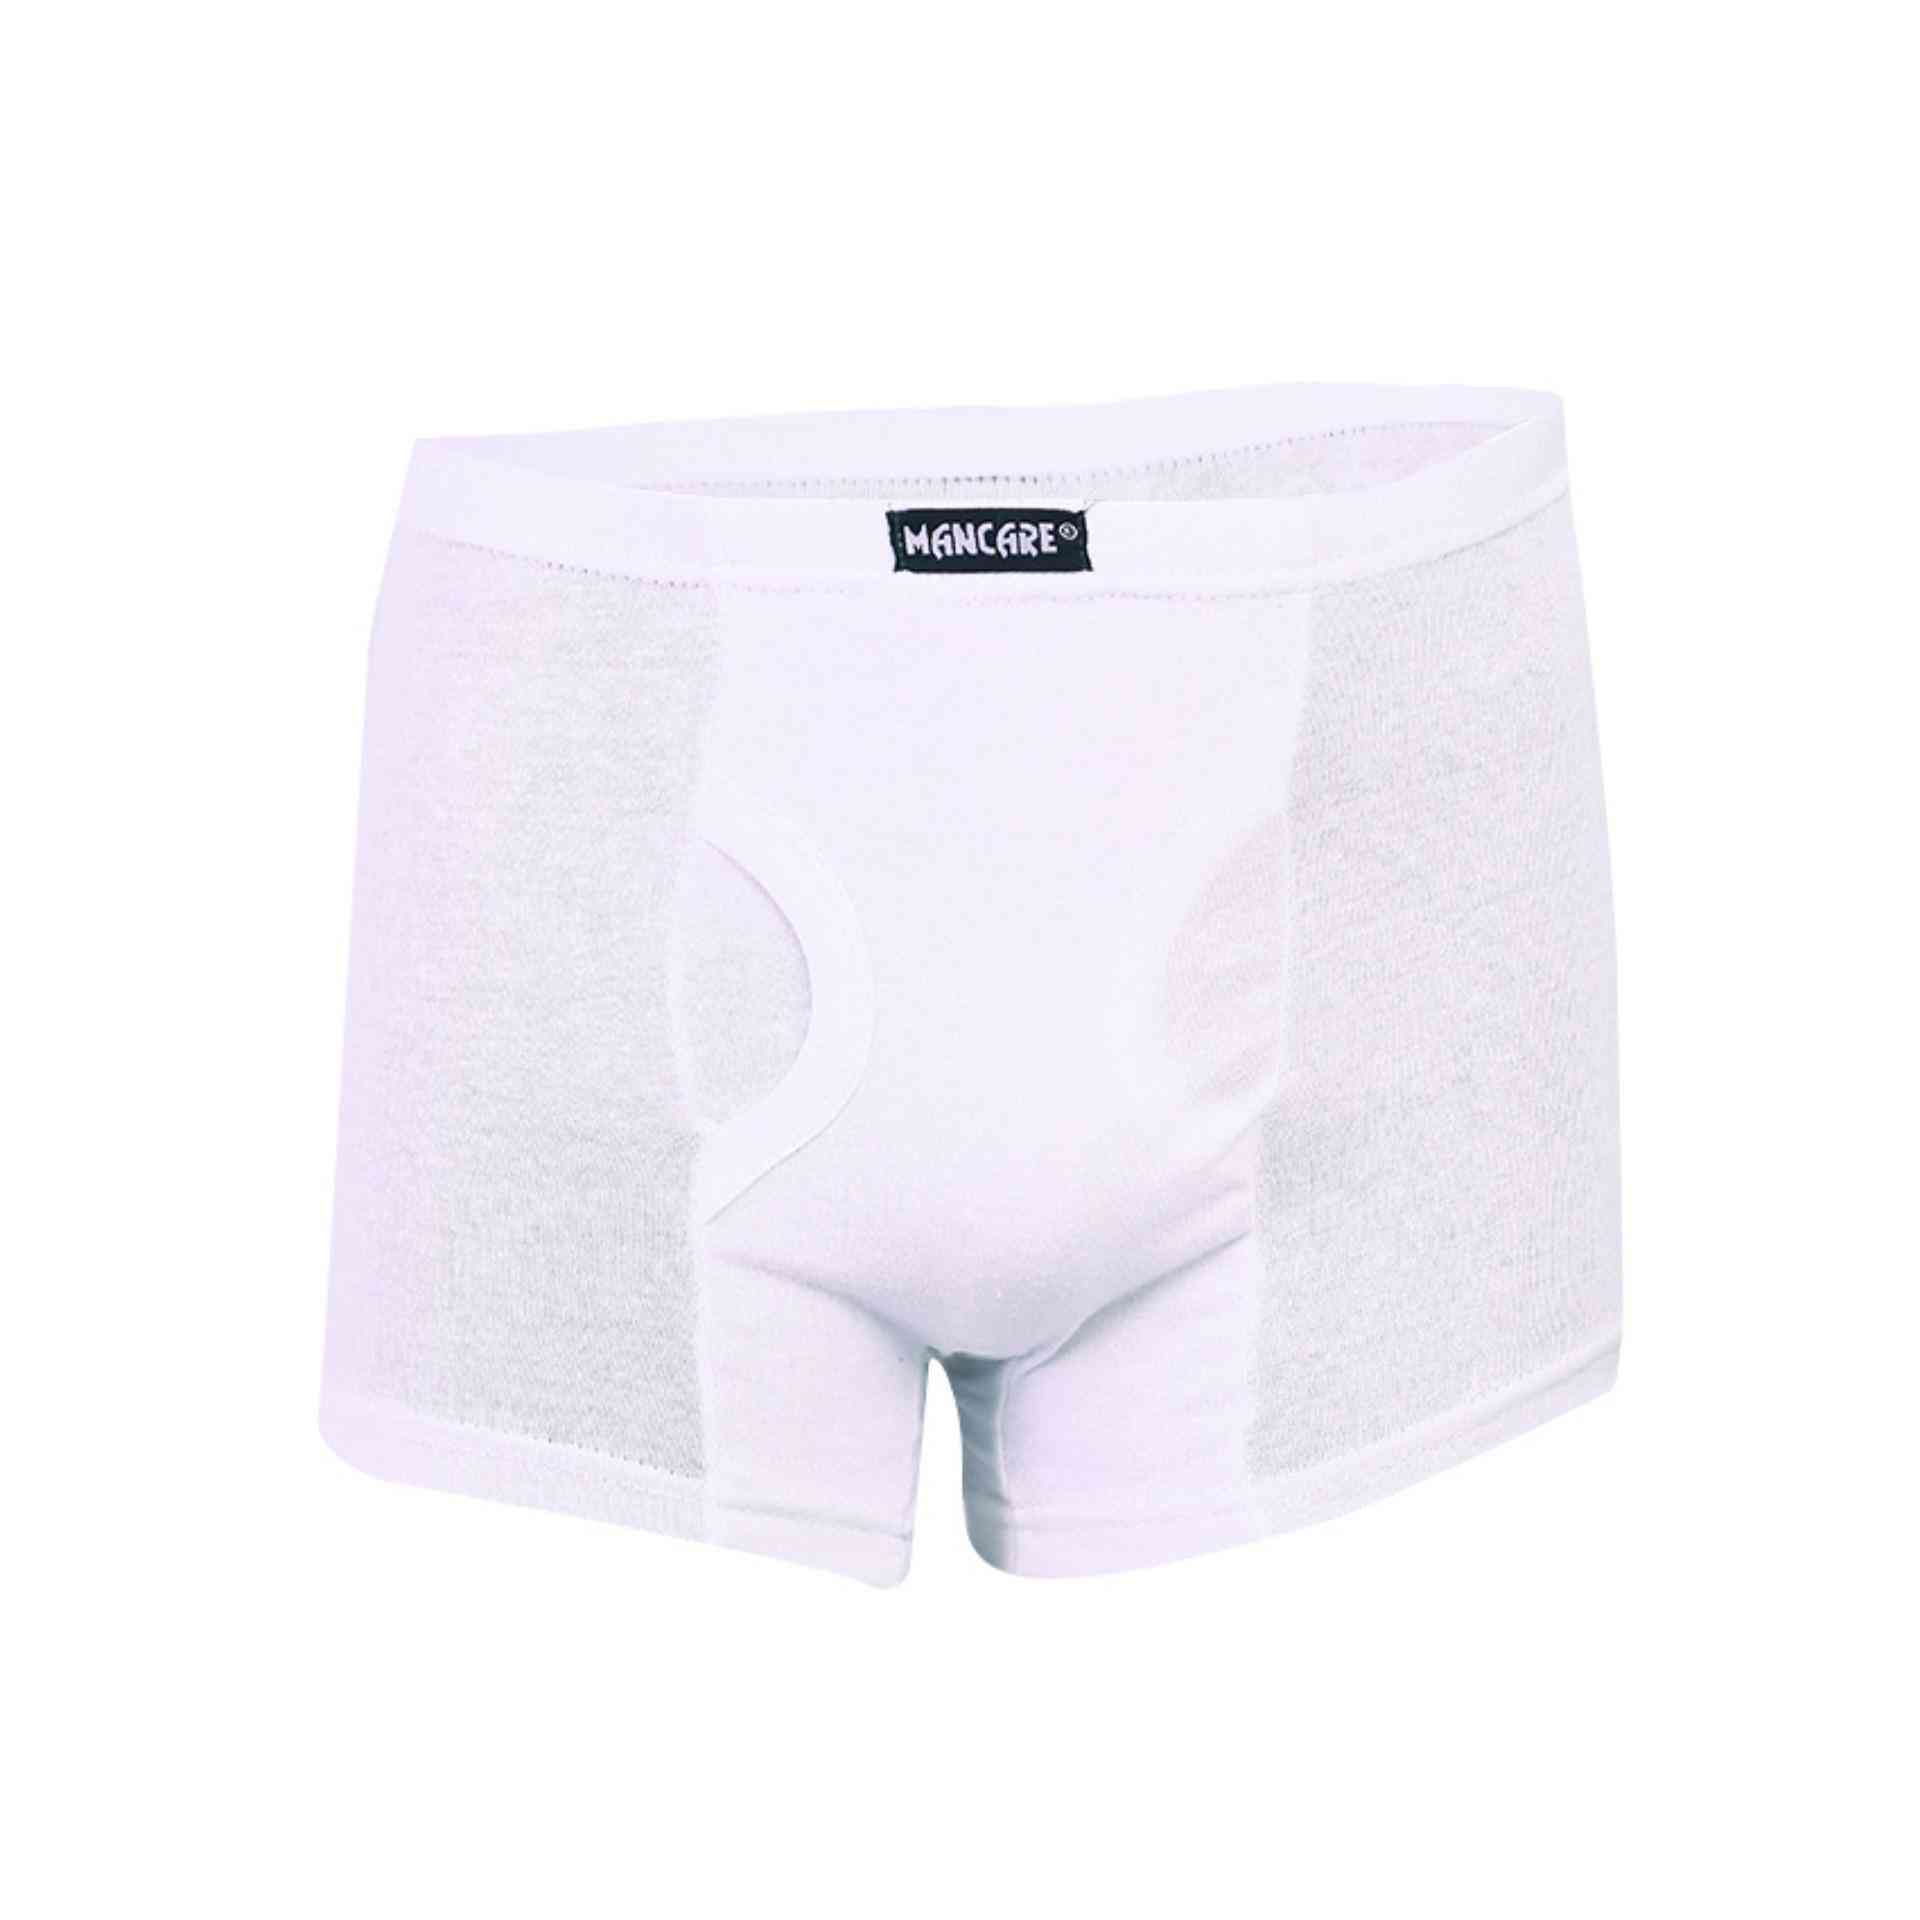 Mancare Pure Cotton Underwear for Men - White